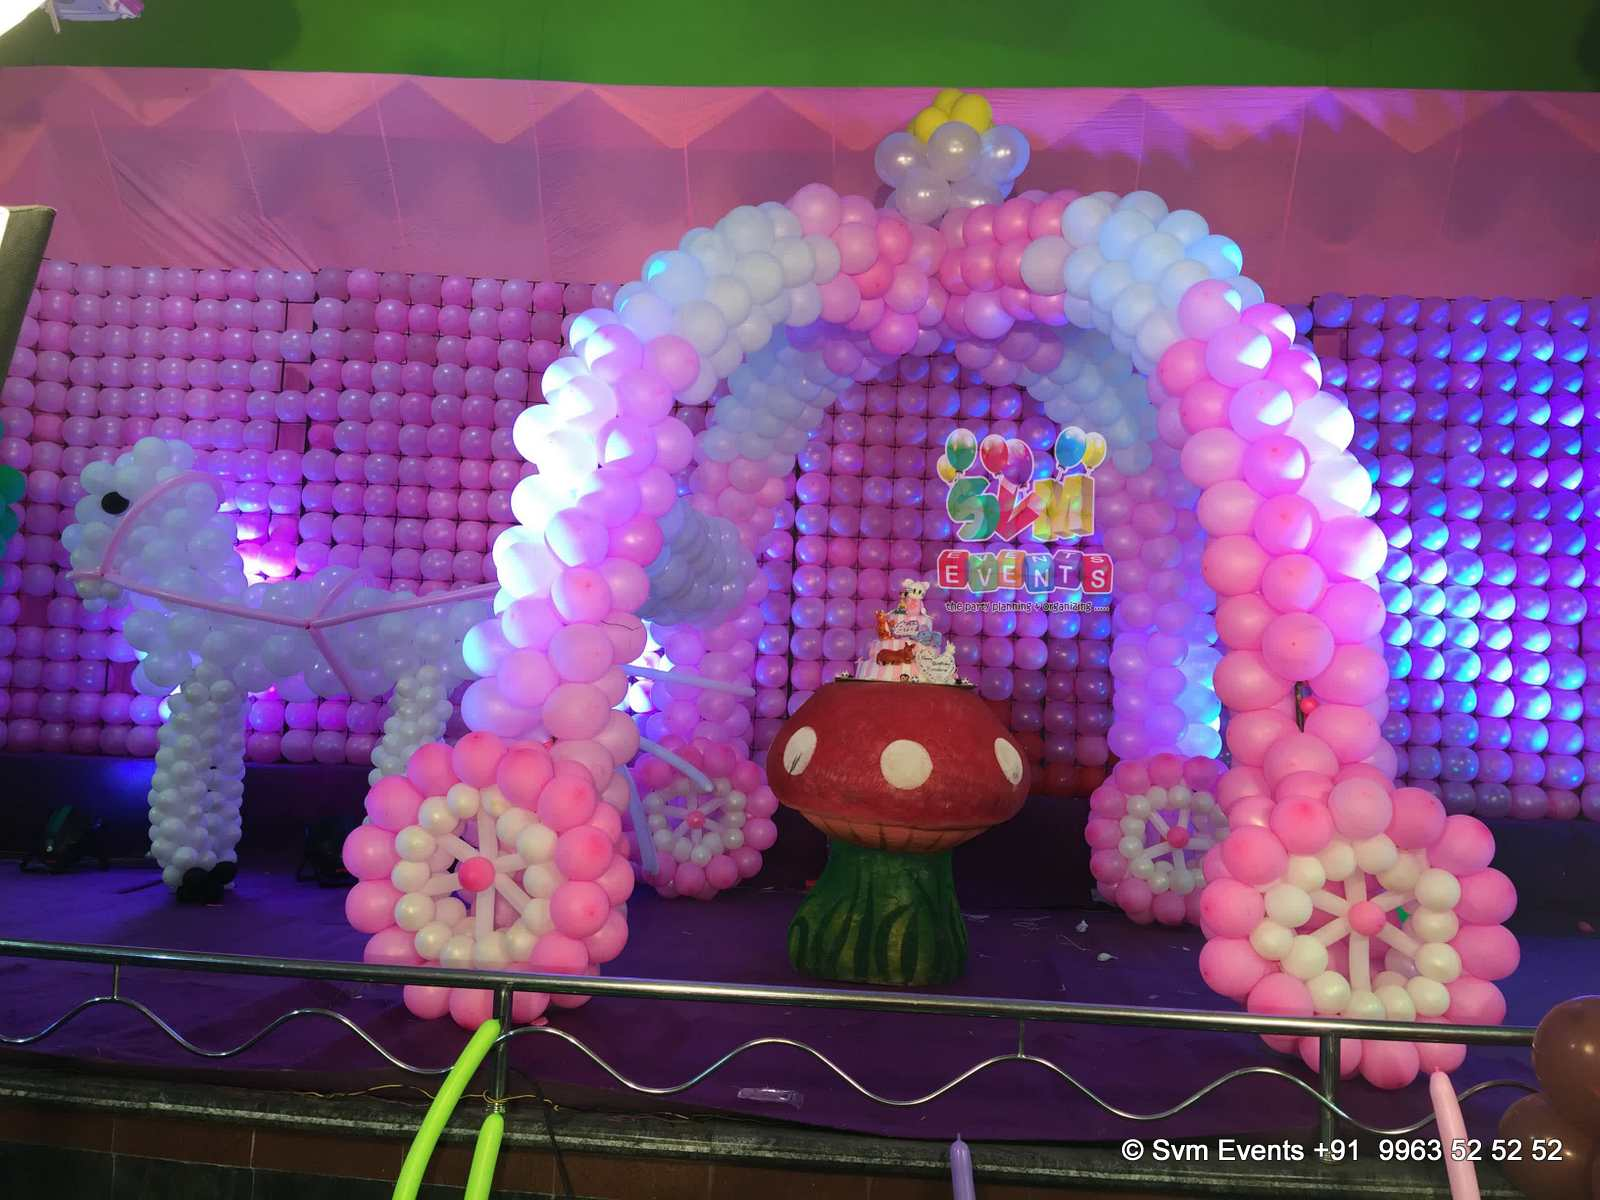 Svm events chariot theme for kids 1st birthday party and for 1st birthday balloon decoration images